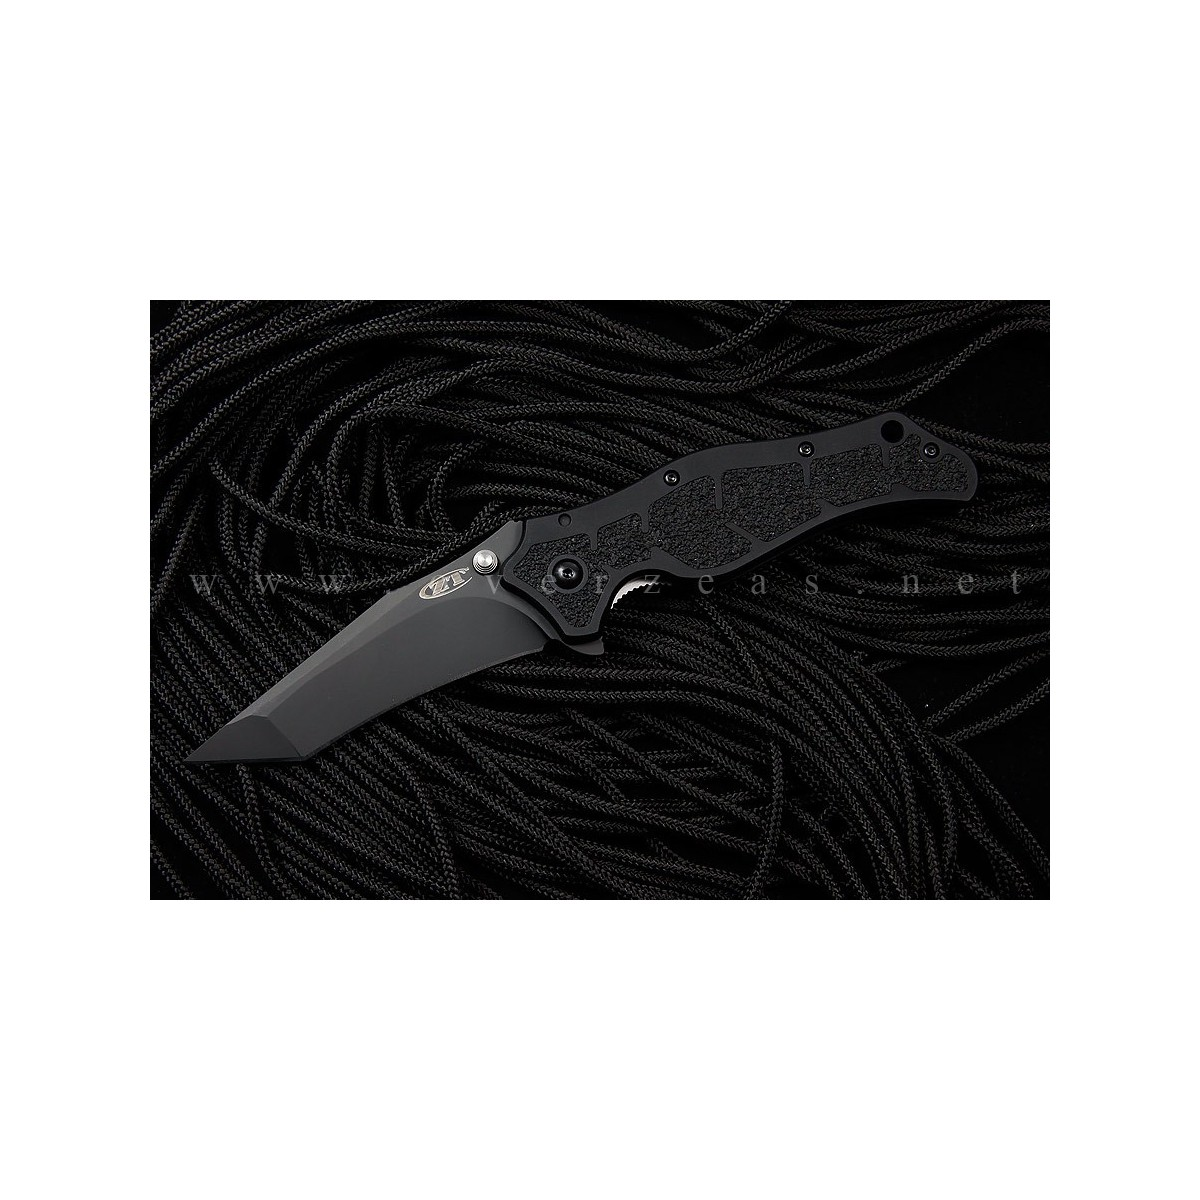 "Zero Tolerance Model 0400 Assisted 3-3/4"" S30V Plain Tanto Blade, Black Aluminum Handles"